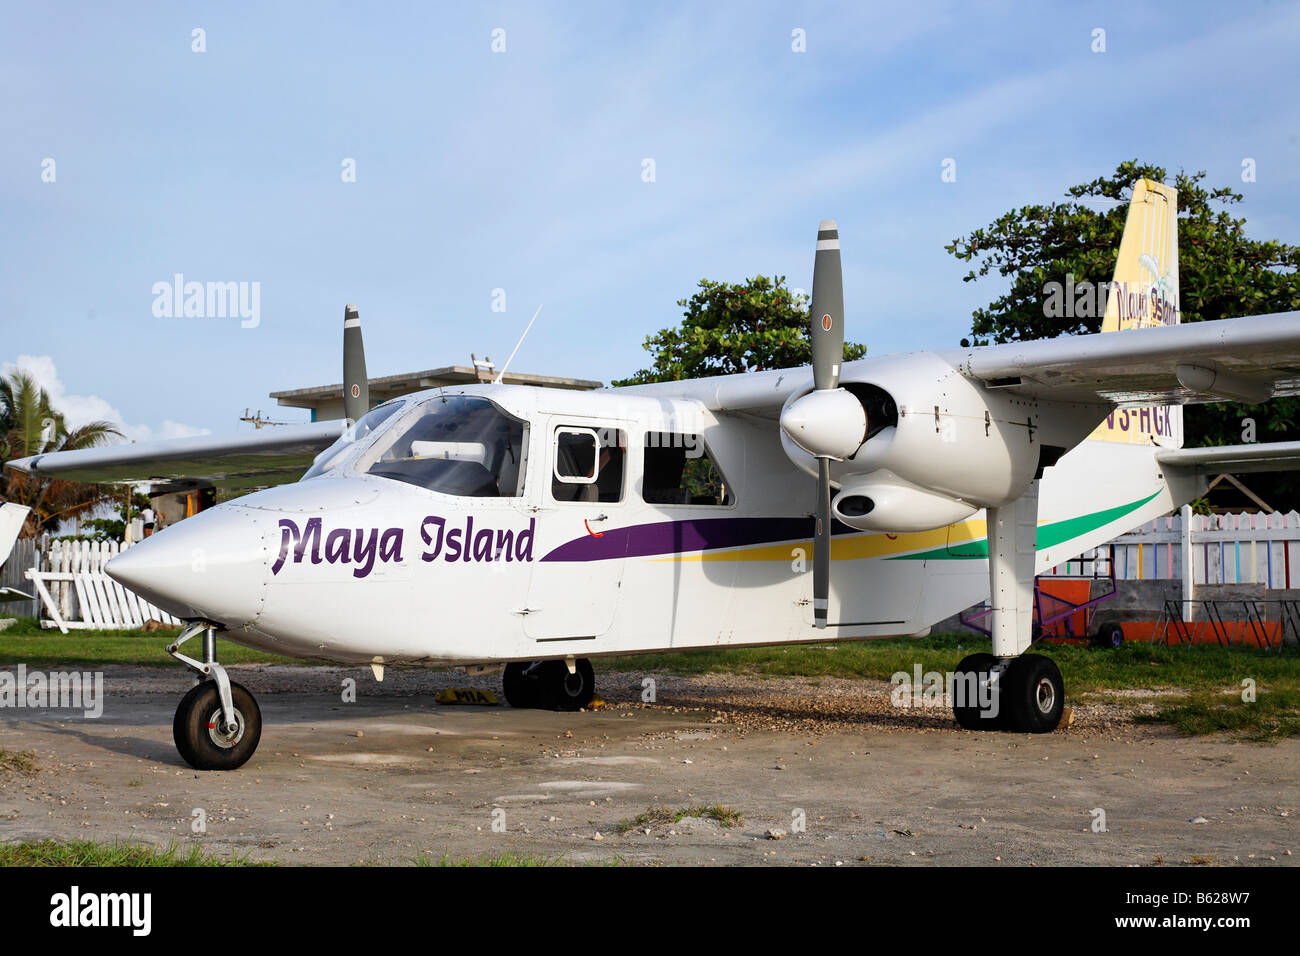 Twin engine plane, a Britten Norman BN2 Islander, Maya Island Air, at the local airport of San Pedro, Ambergris - Stock Image